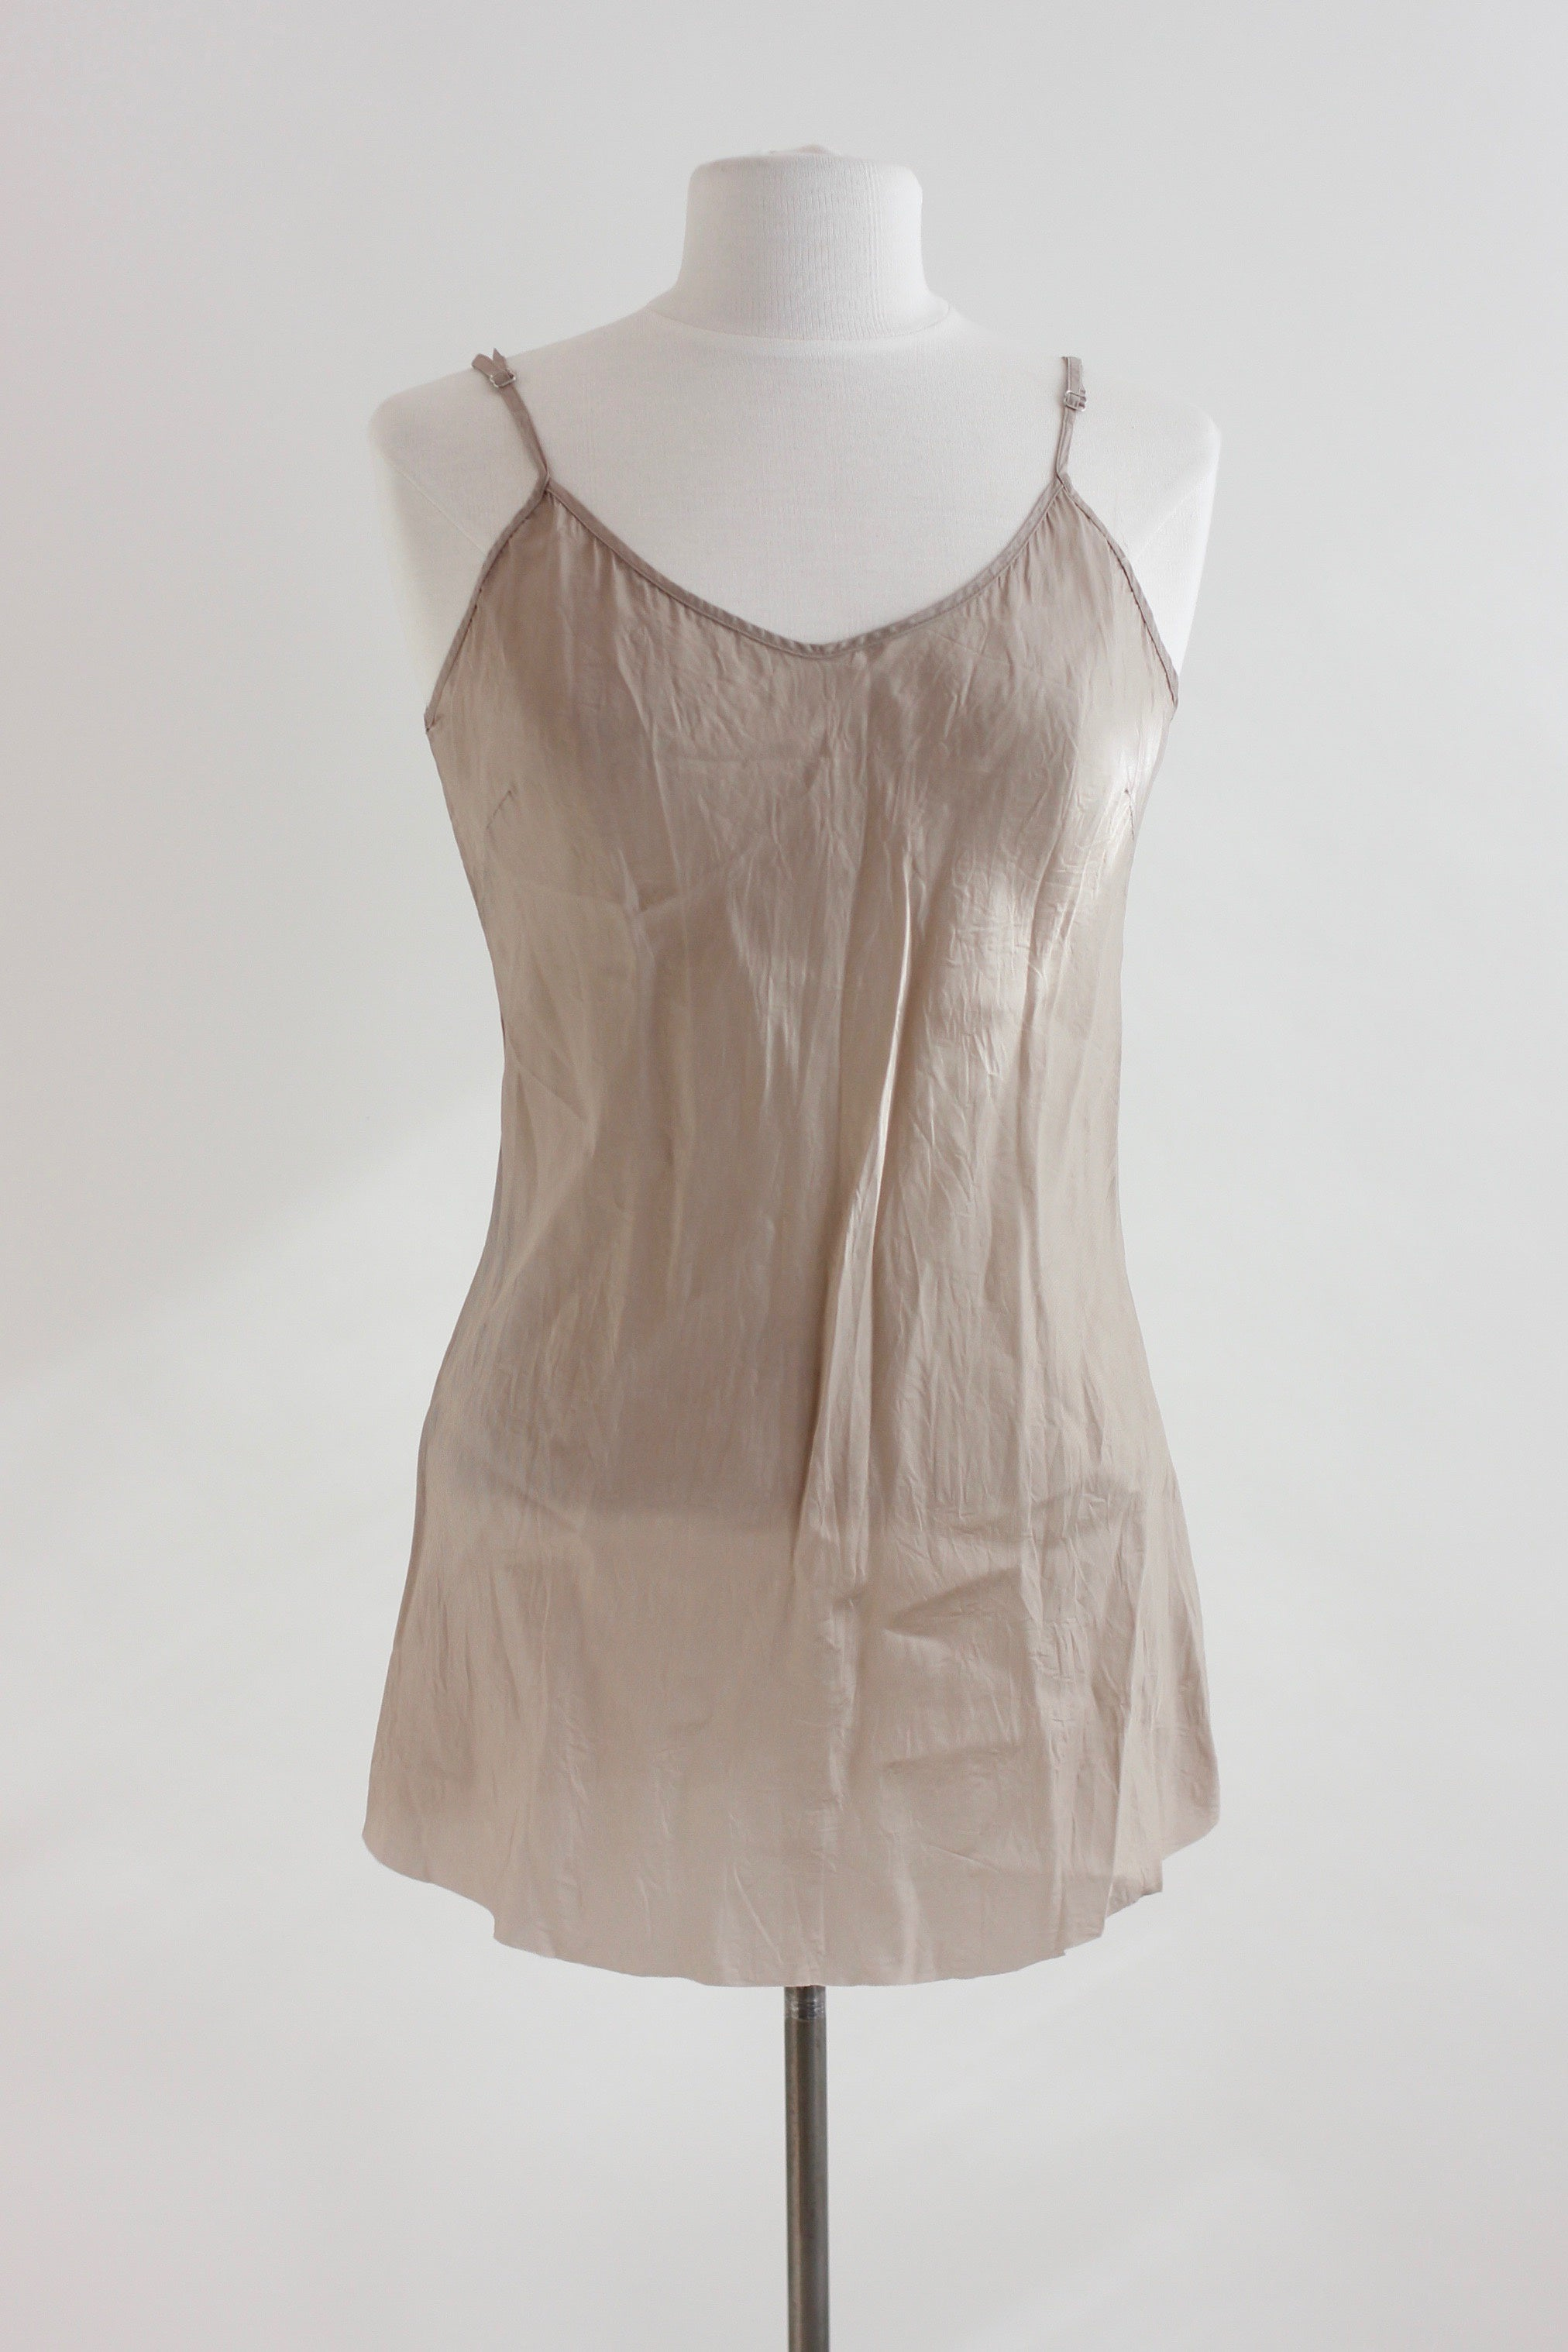 FLATIRON WORKSHOP Cupro Camisole - Habits Jackson Hole